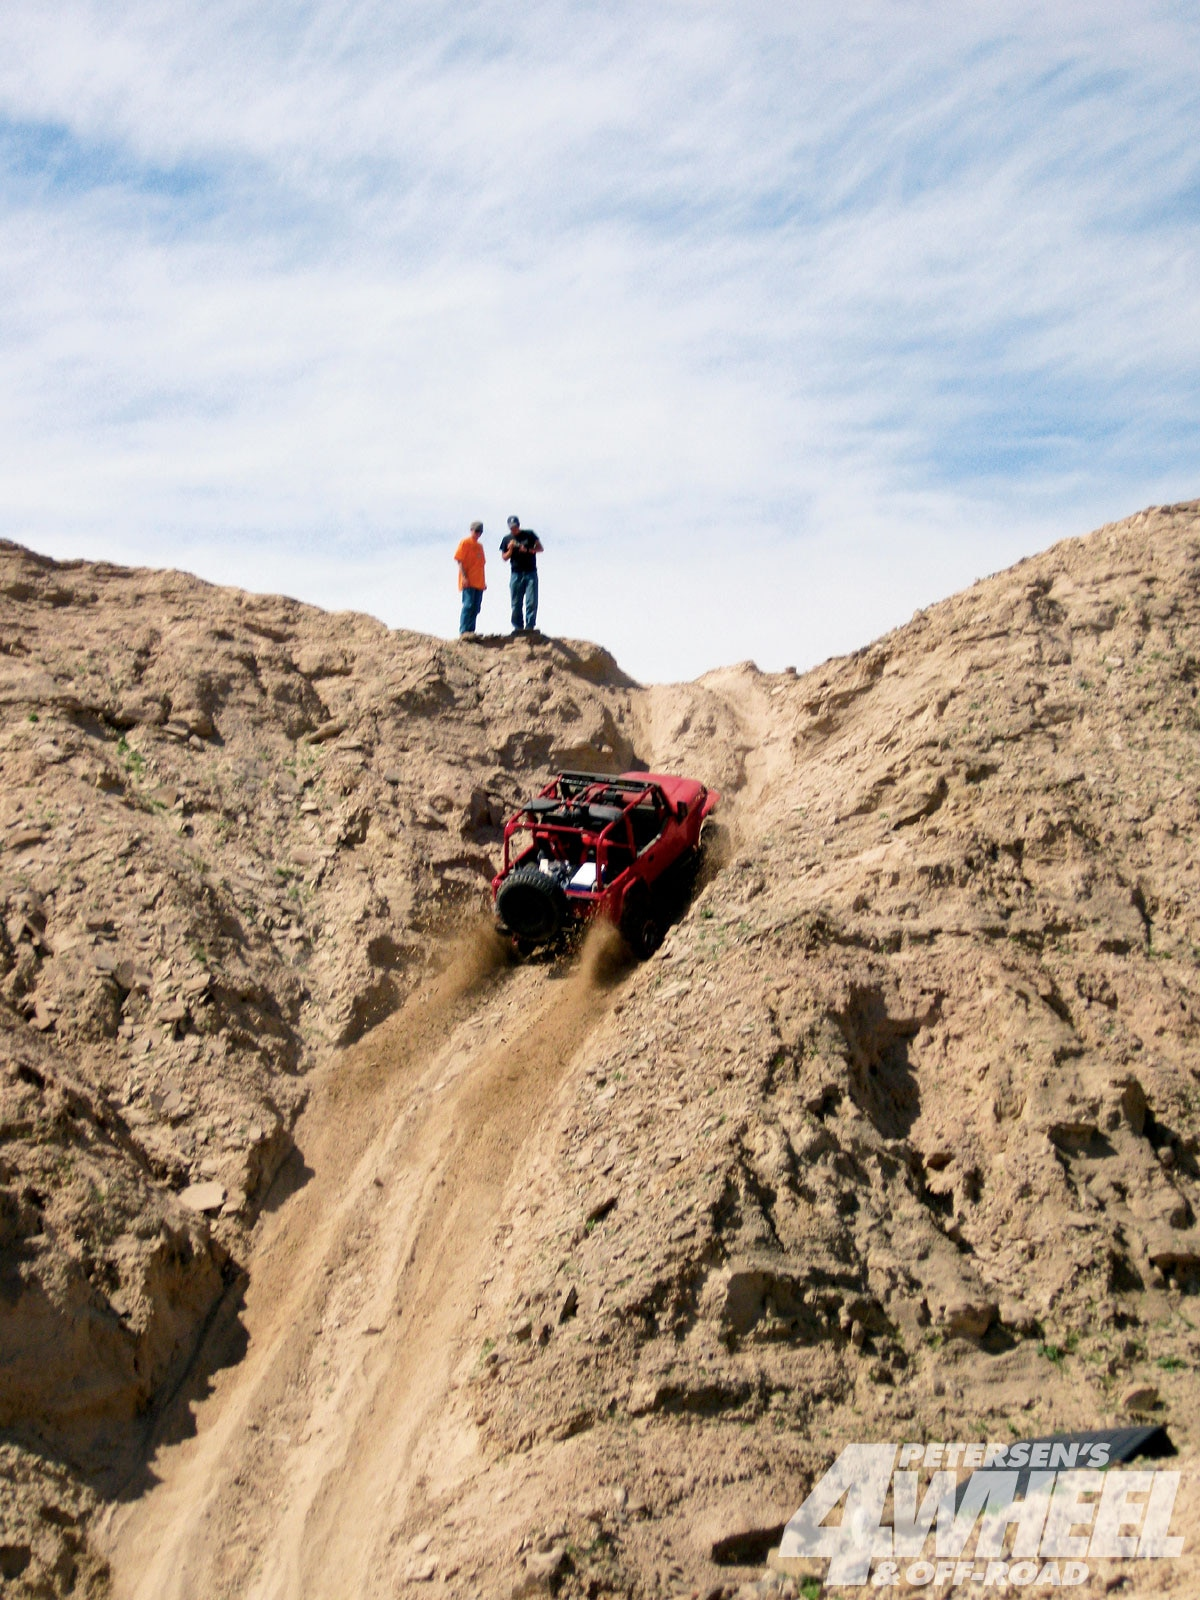 There are lots of steep hills, and the climbs are a great way to test a four-wheeler's climbing fortitude. Some of the hillclimbs are downright scary.